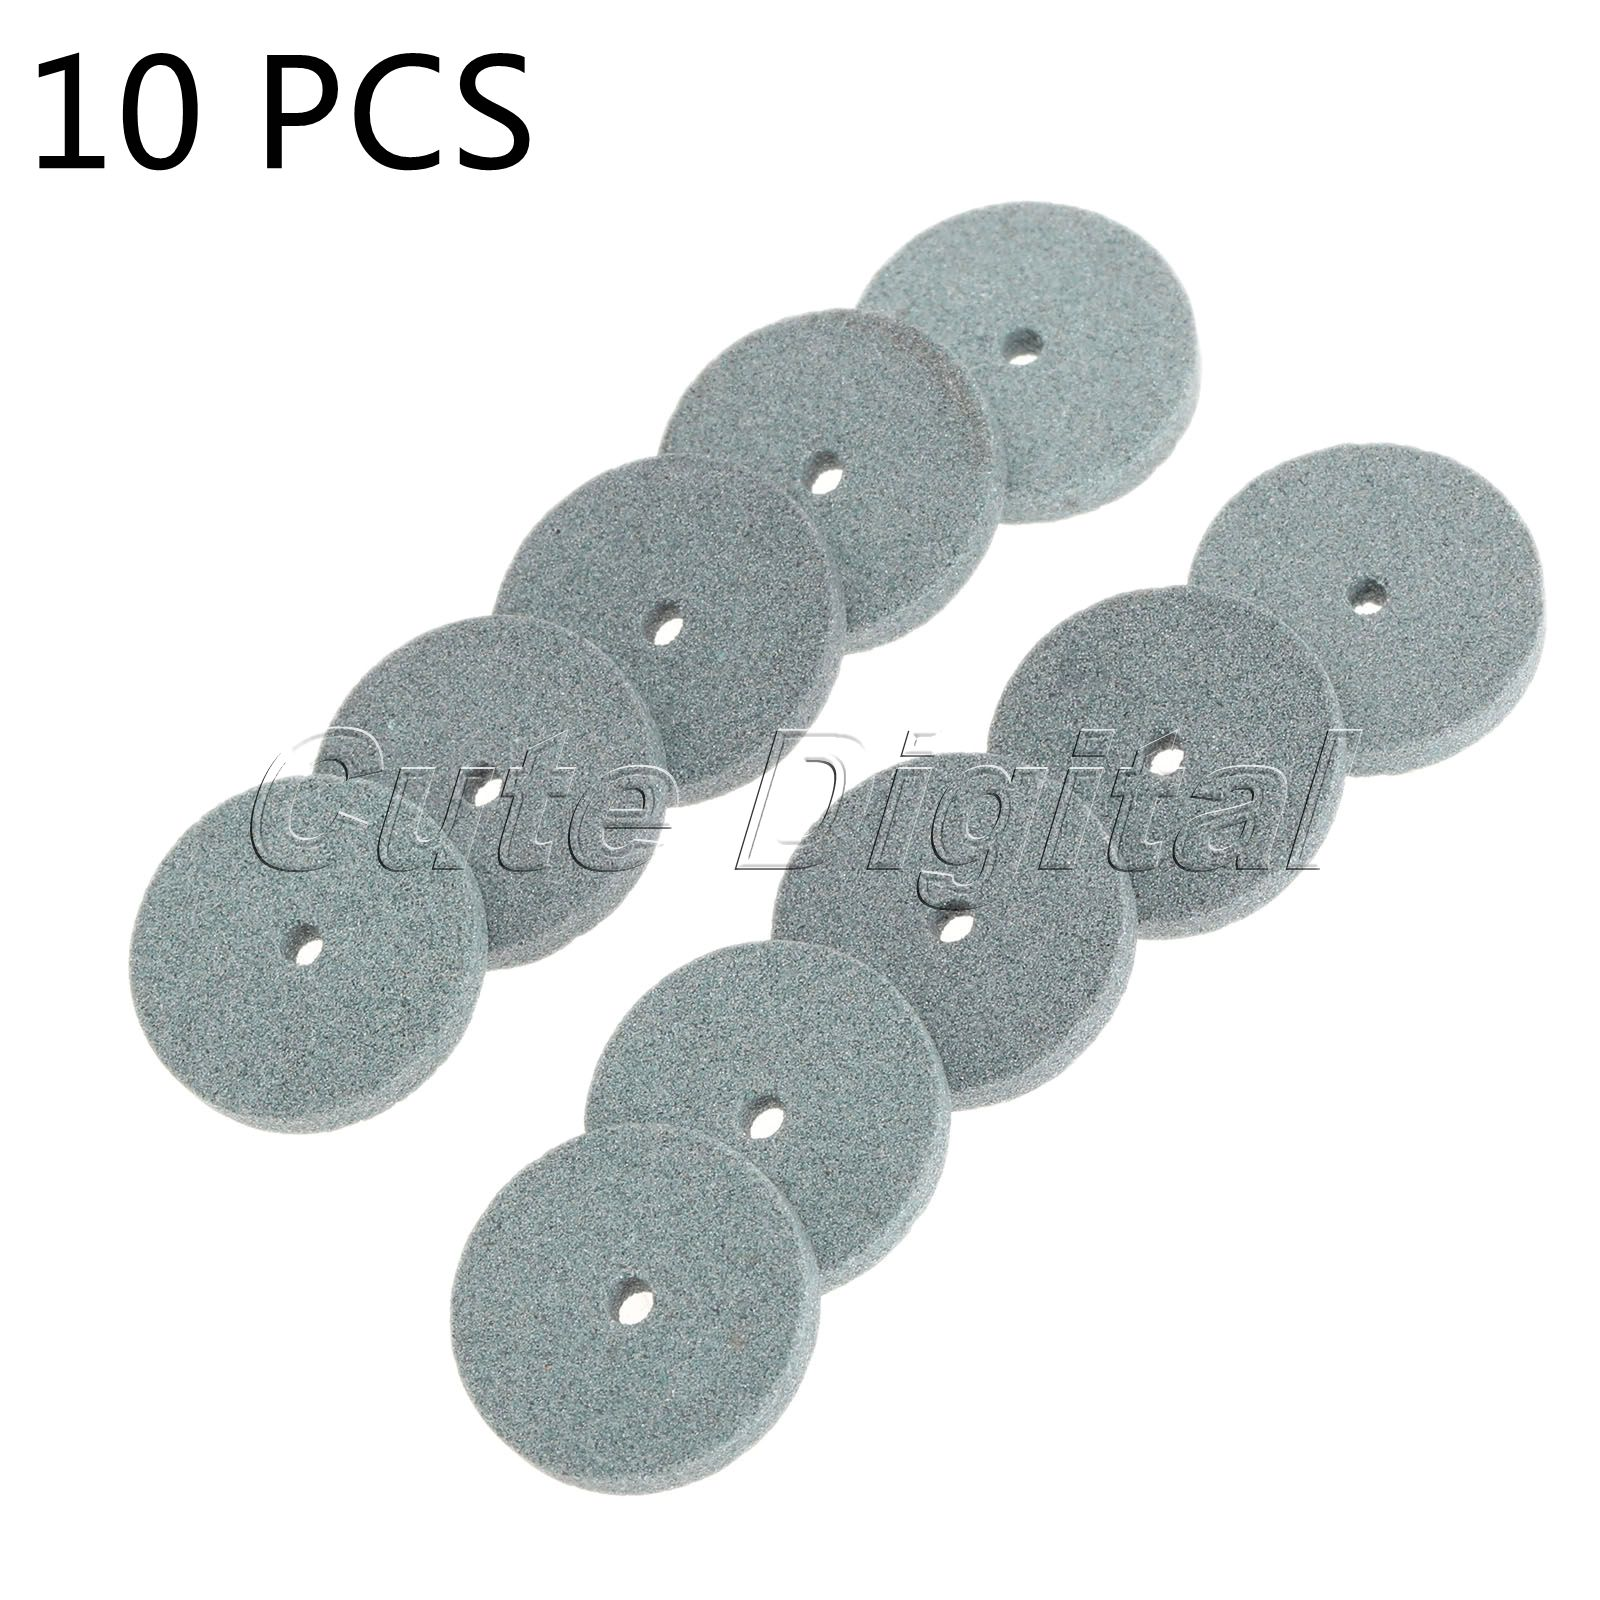 10pcs 20mm Diamond Grinding Wheel polishing dremel Mounted Stone Abrasive Tools Dremel Rotary Tool acessorios para dremel 10 pieces cylinder abrasive polishing mounted point green 12mm x 20mm x 3mm